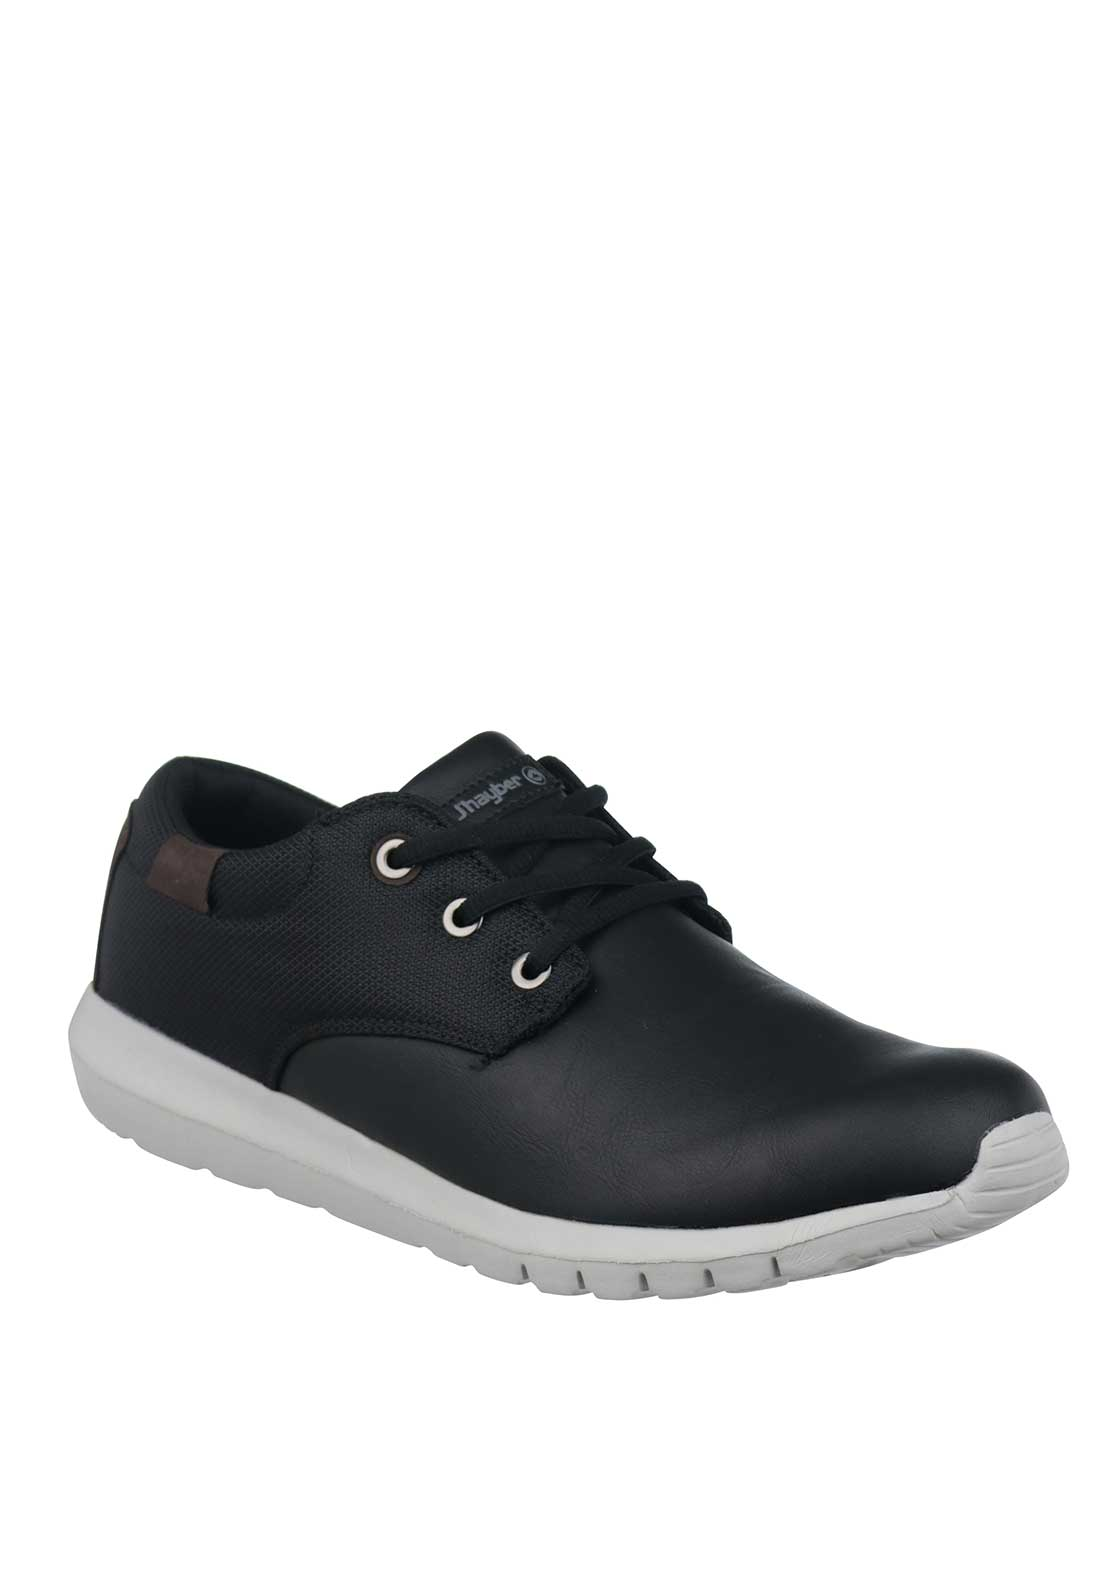 J'hayber Mens Chabeta Trainers, Black